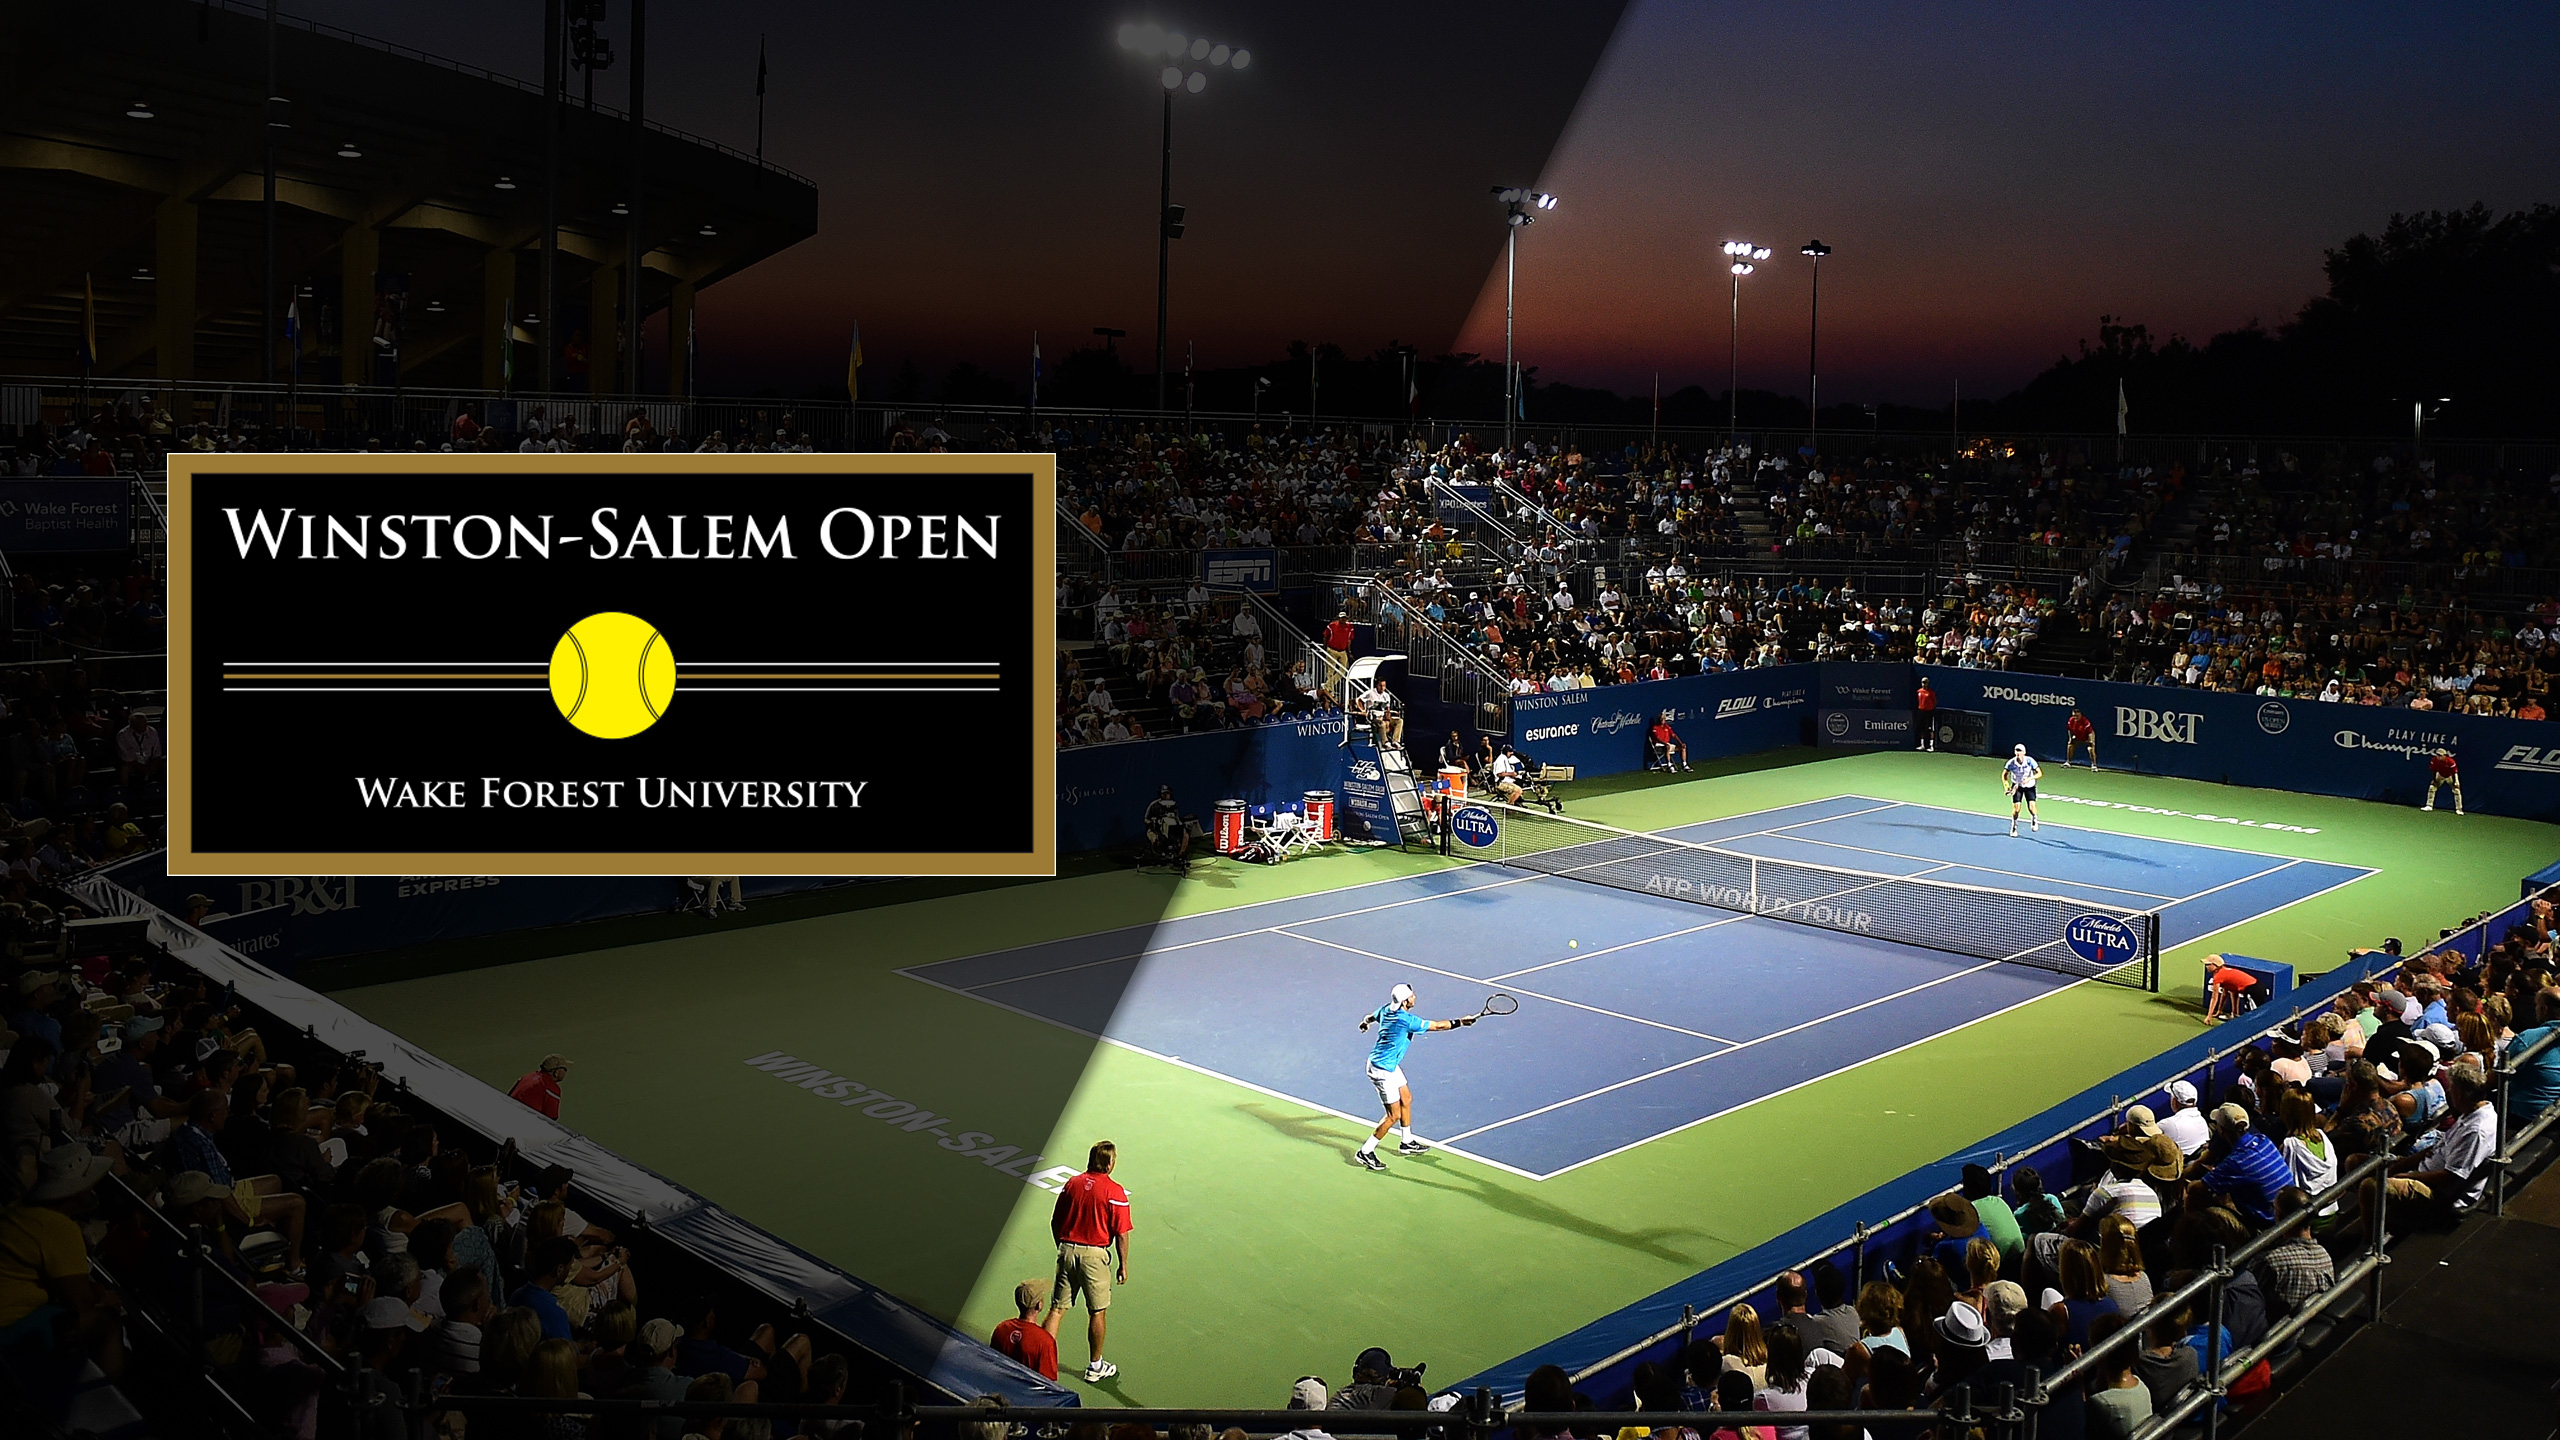 2018 US Open Series - Winston-Salem Open (First Round)